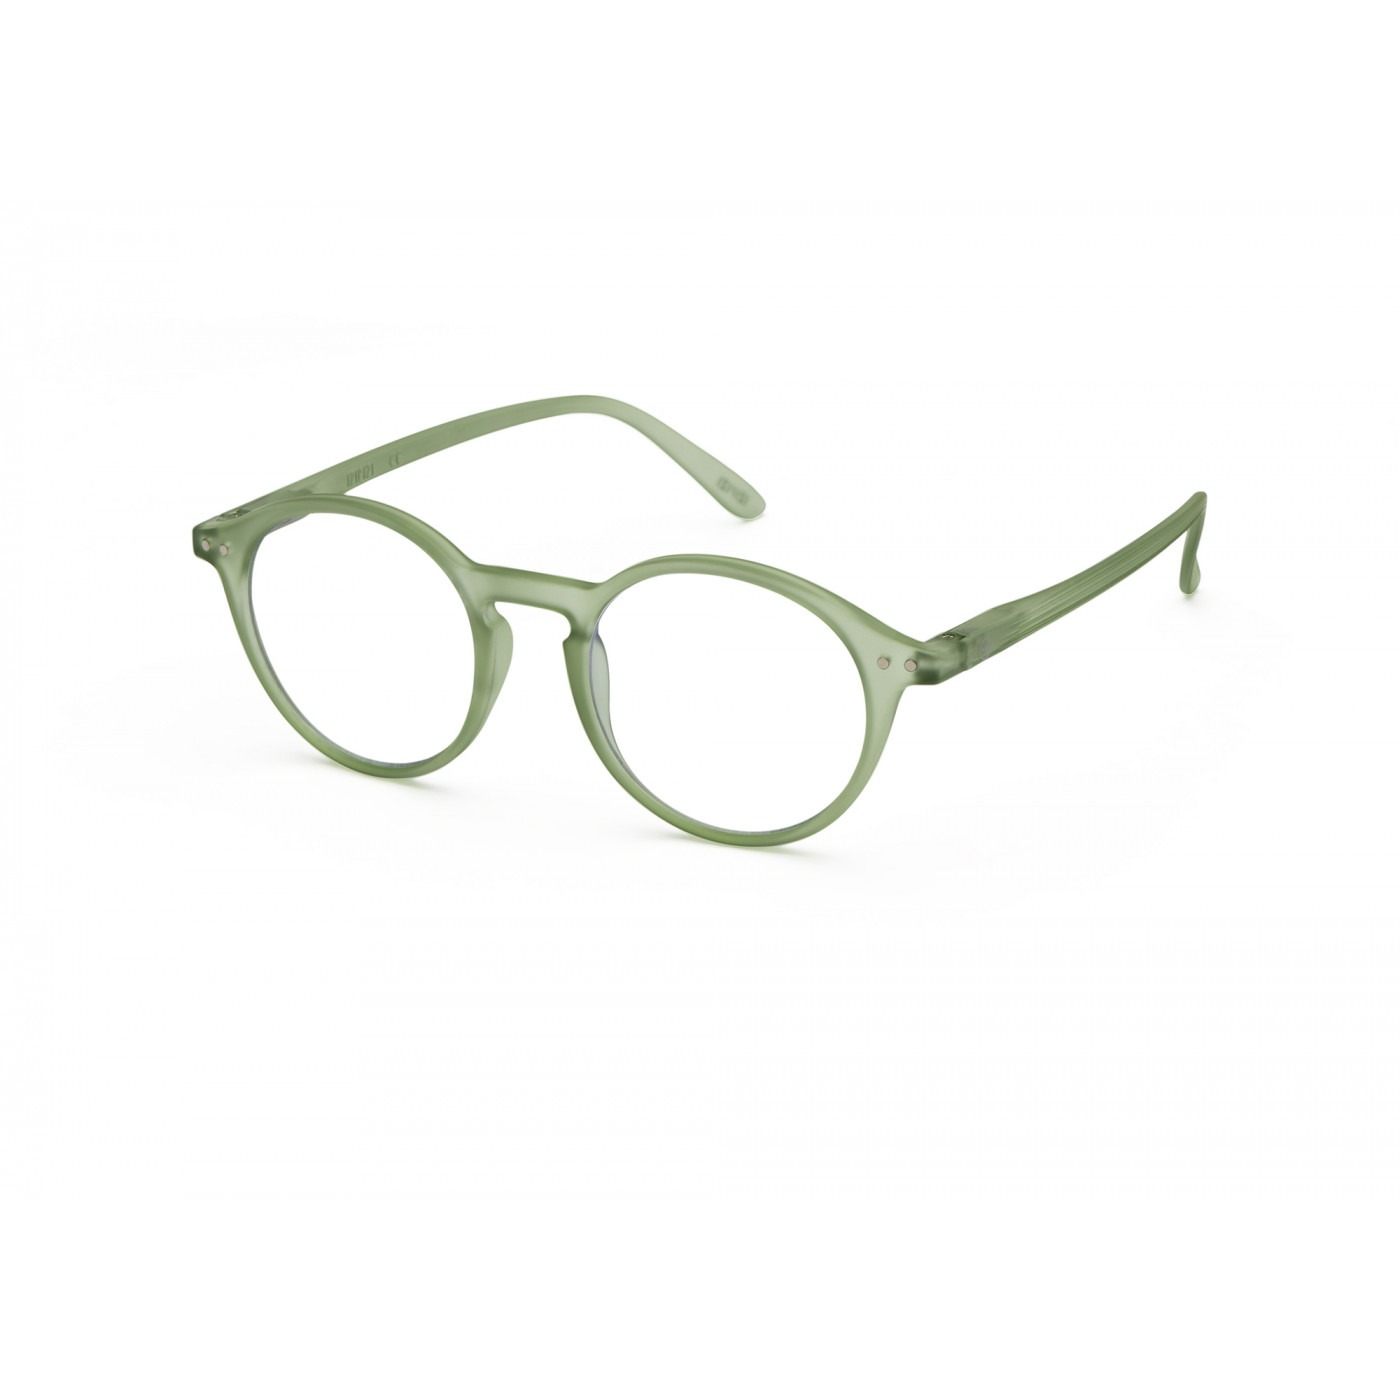 Izipizi #D Screen Protection Glasses in Peppermint